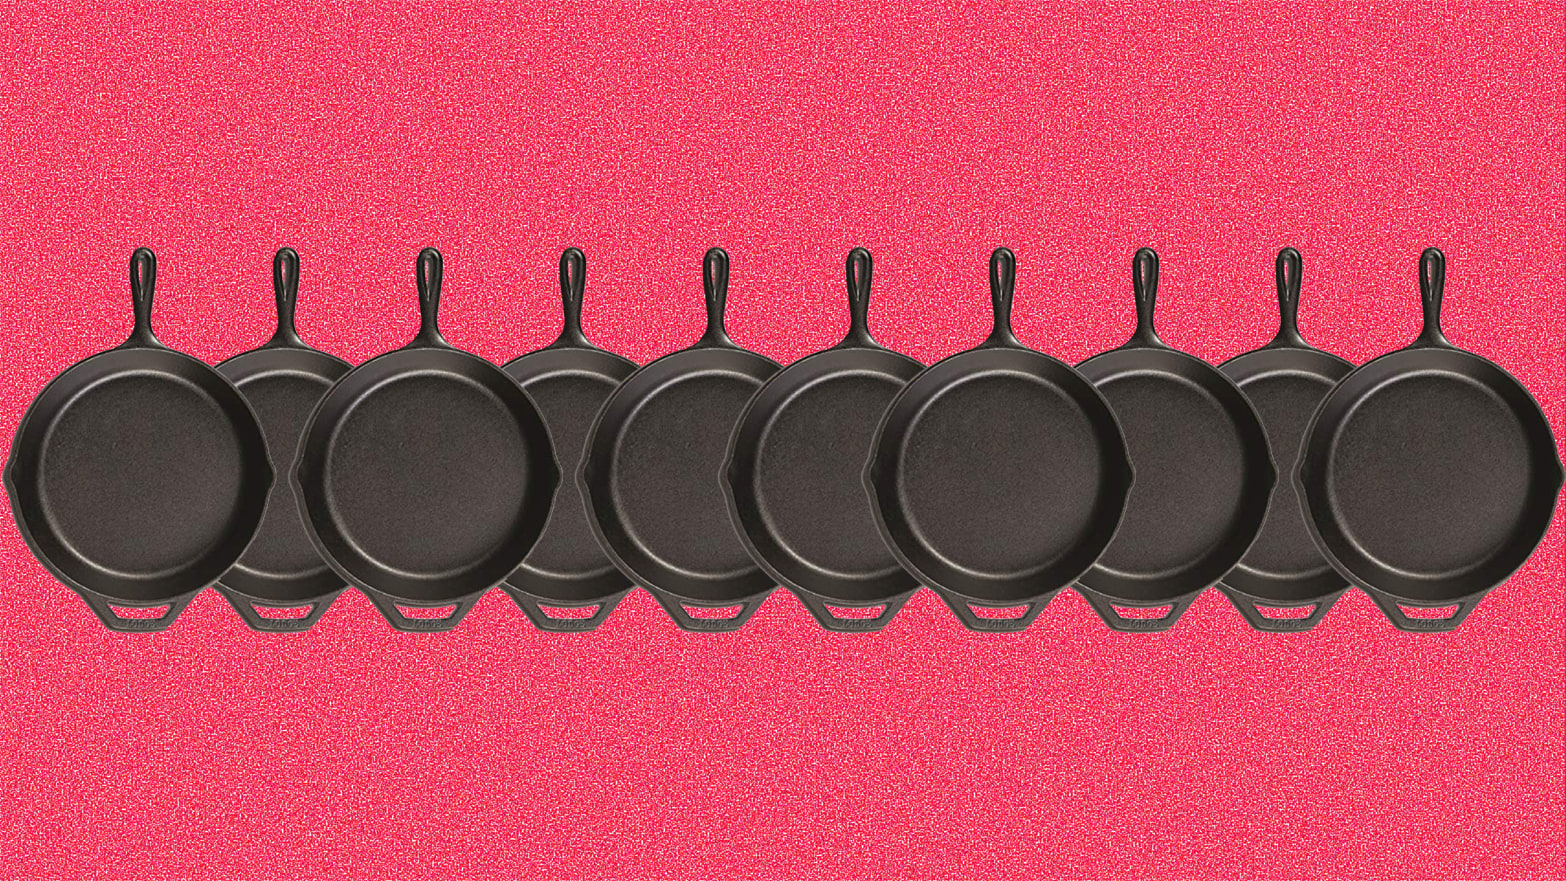 Get This Best Selling Cast Iron Skillet at the Lowest Price It's Been In Two Years